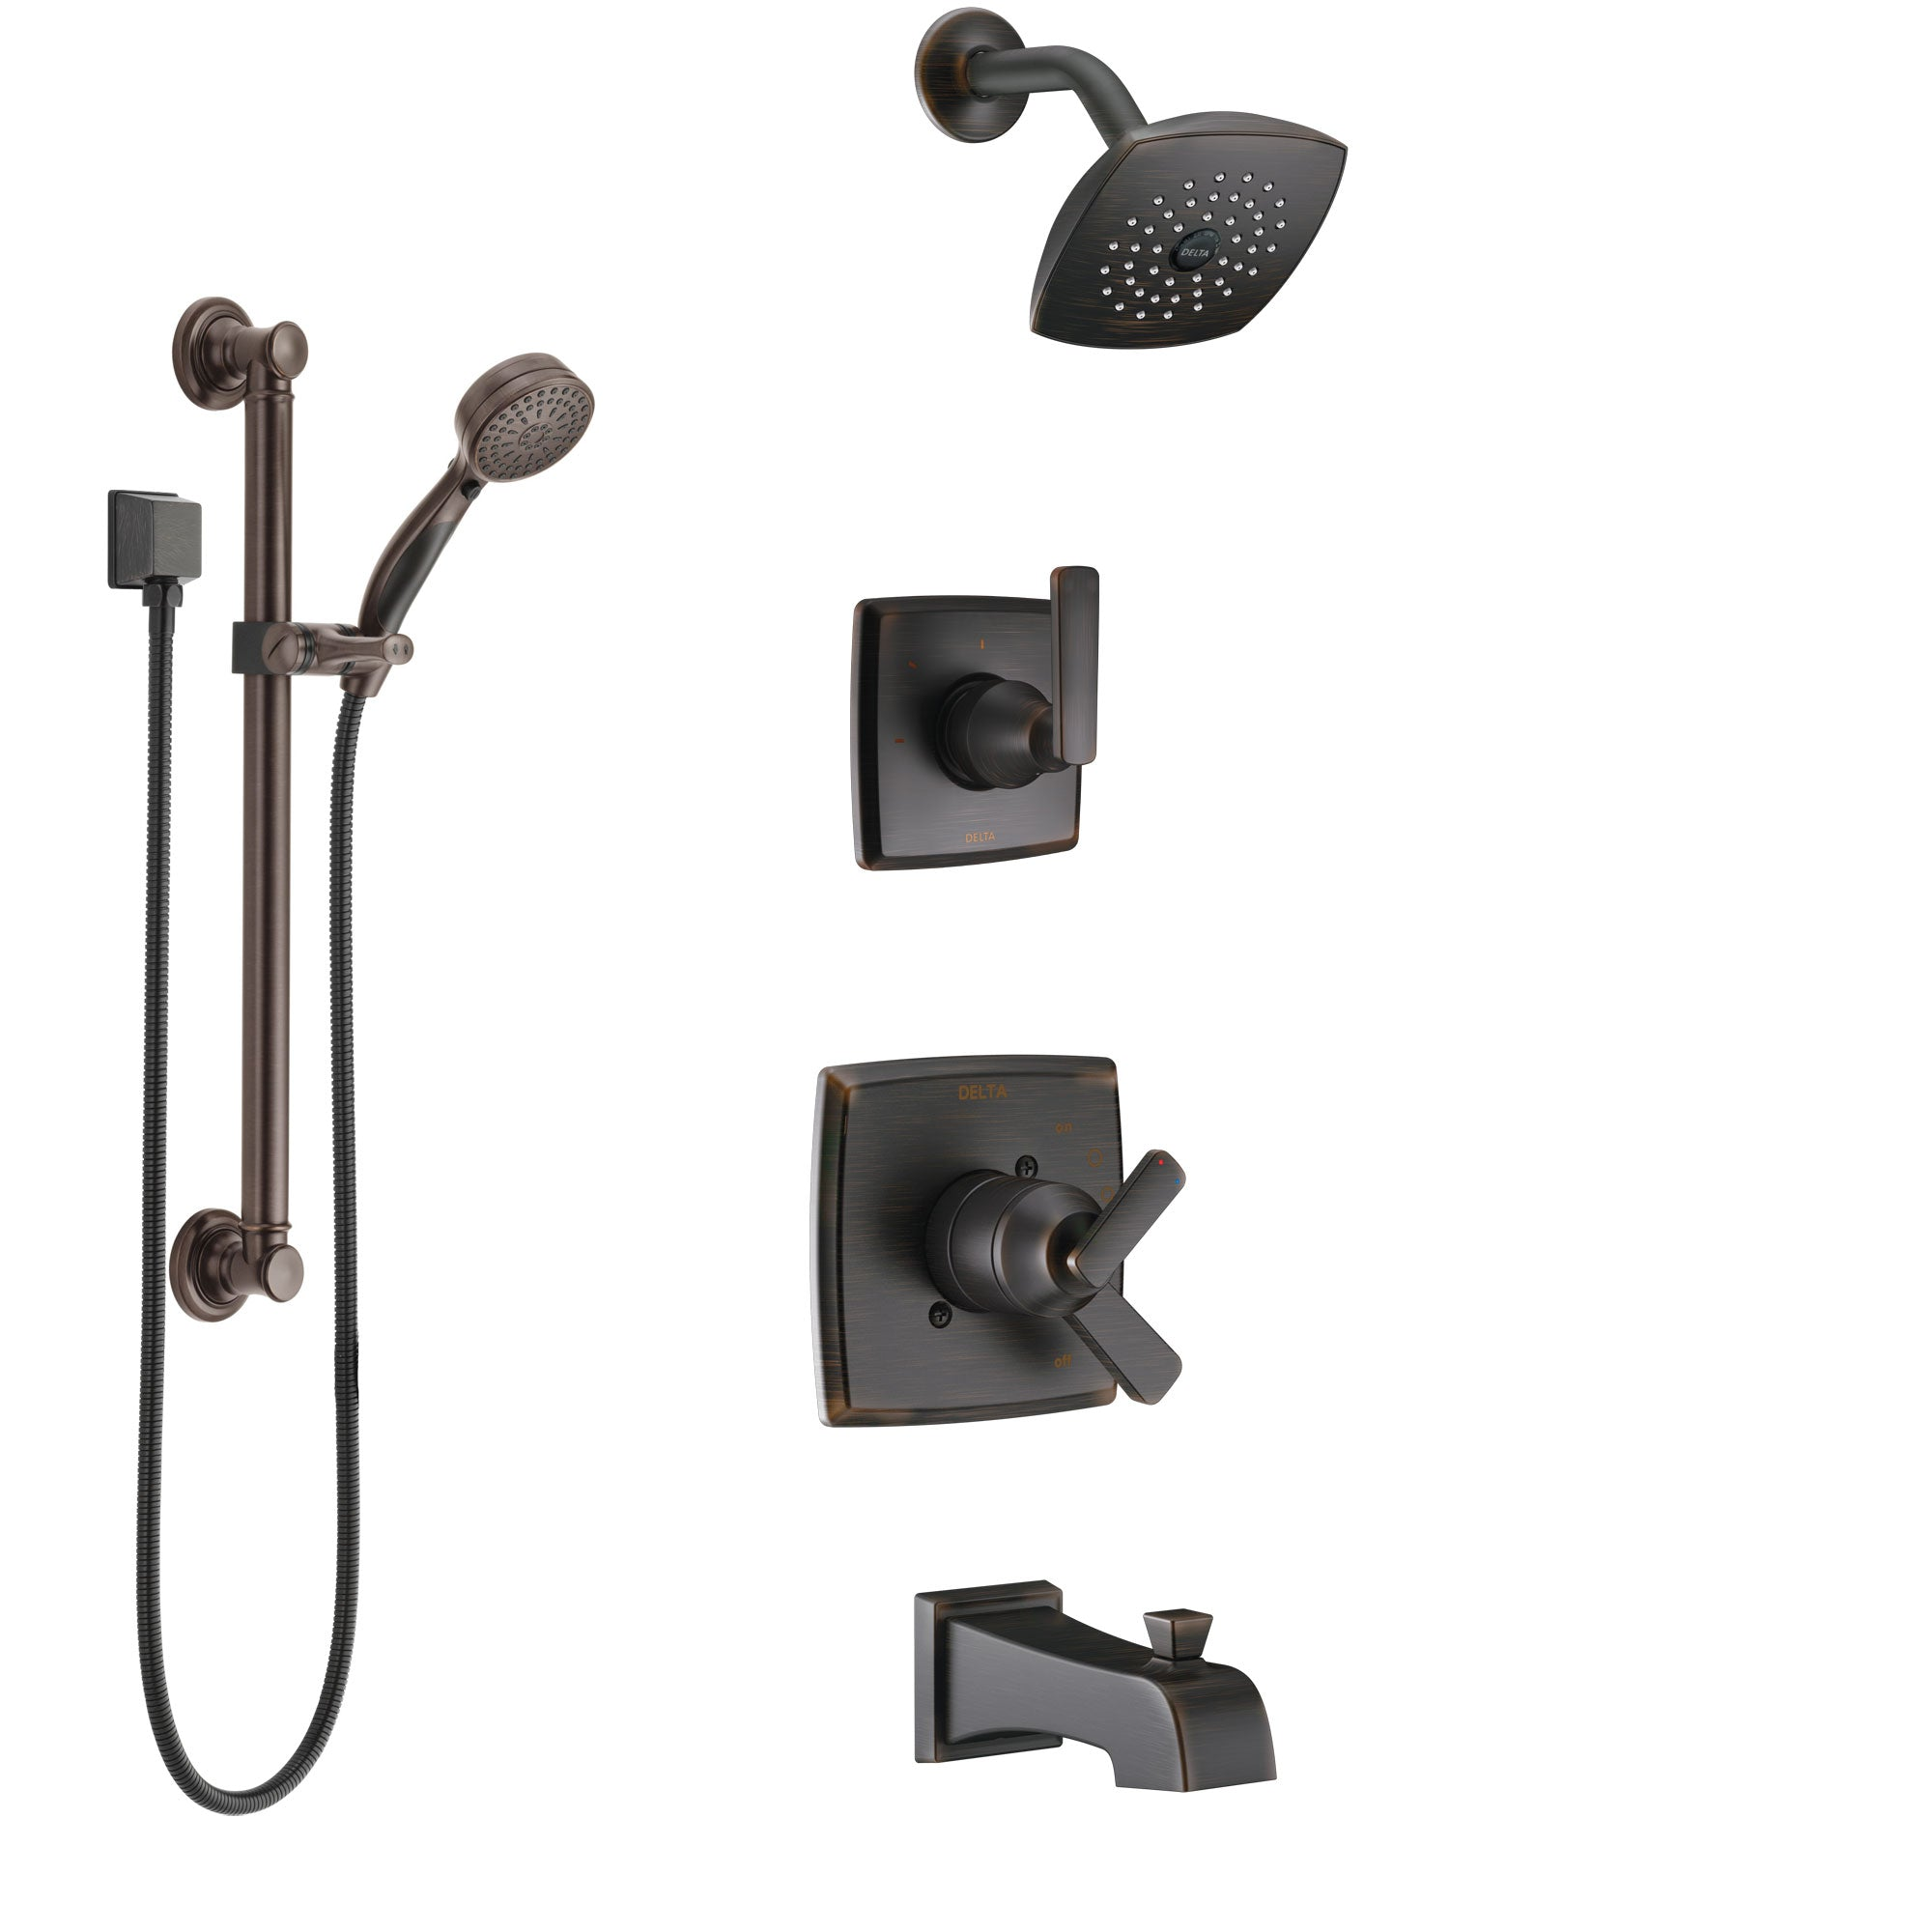 Delta Ashlyn Venetian Bronze Tub and Shower System with Dual Control Handle, 3-Setting Diverter, Showerhead, and Hand Shower with Grab Bar SS17464RB3